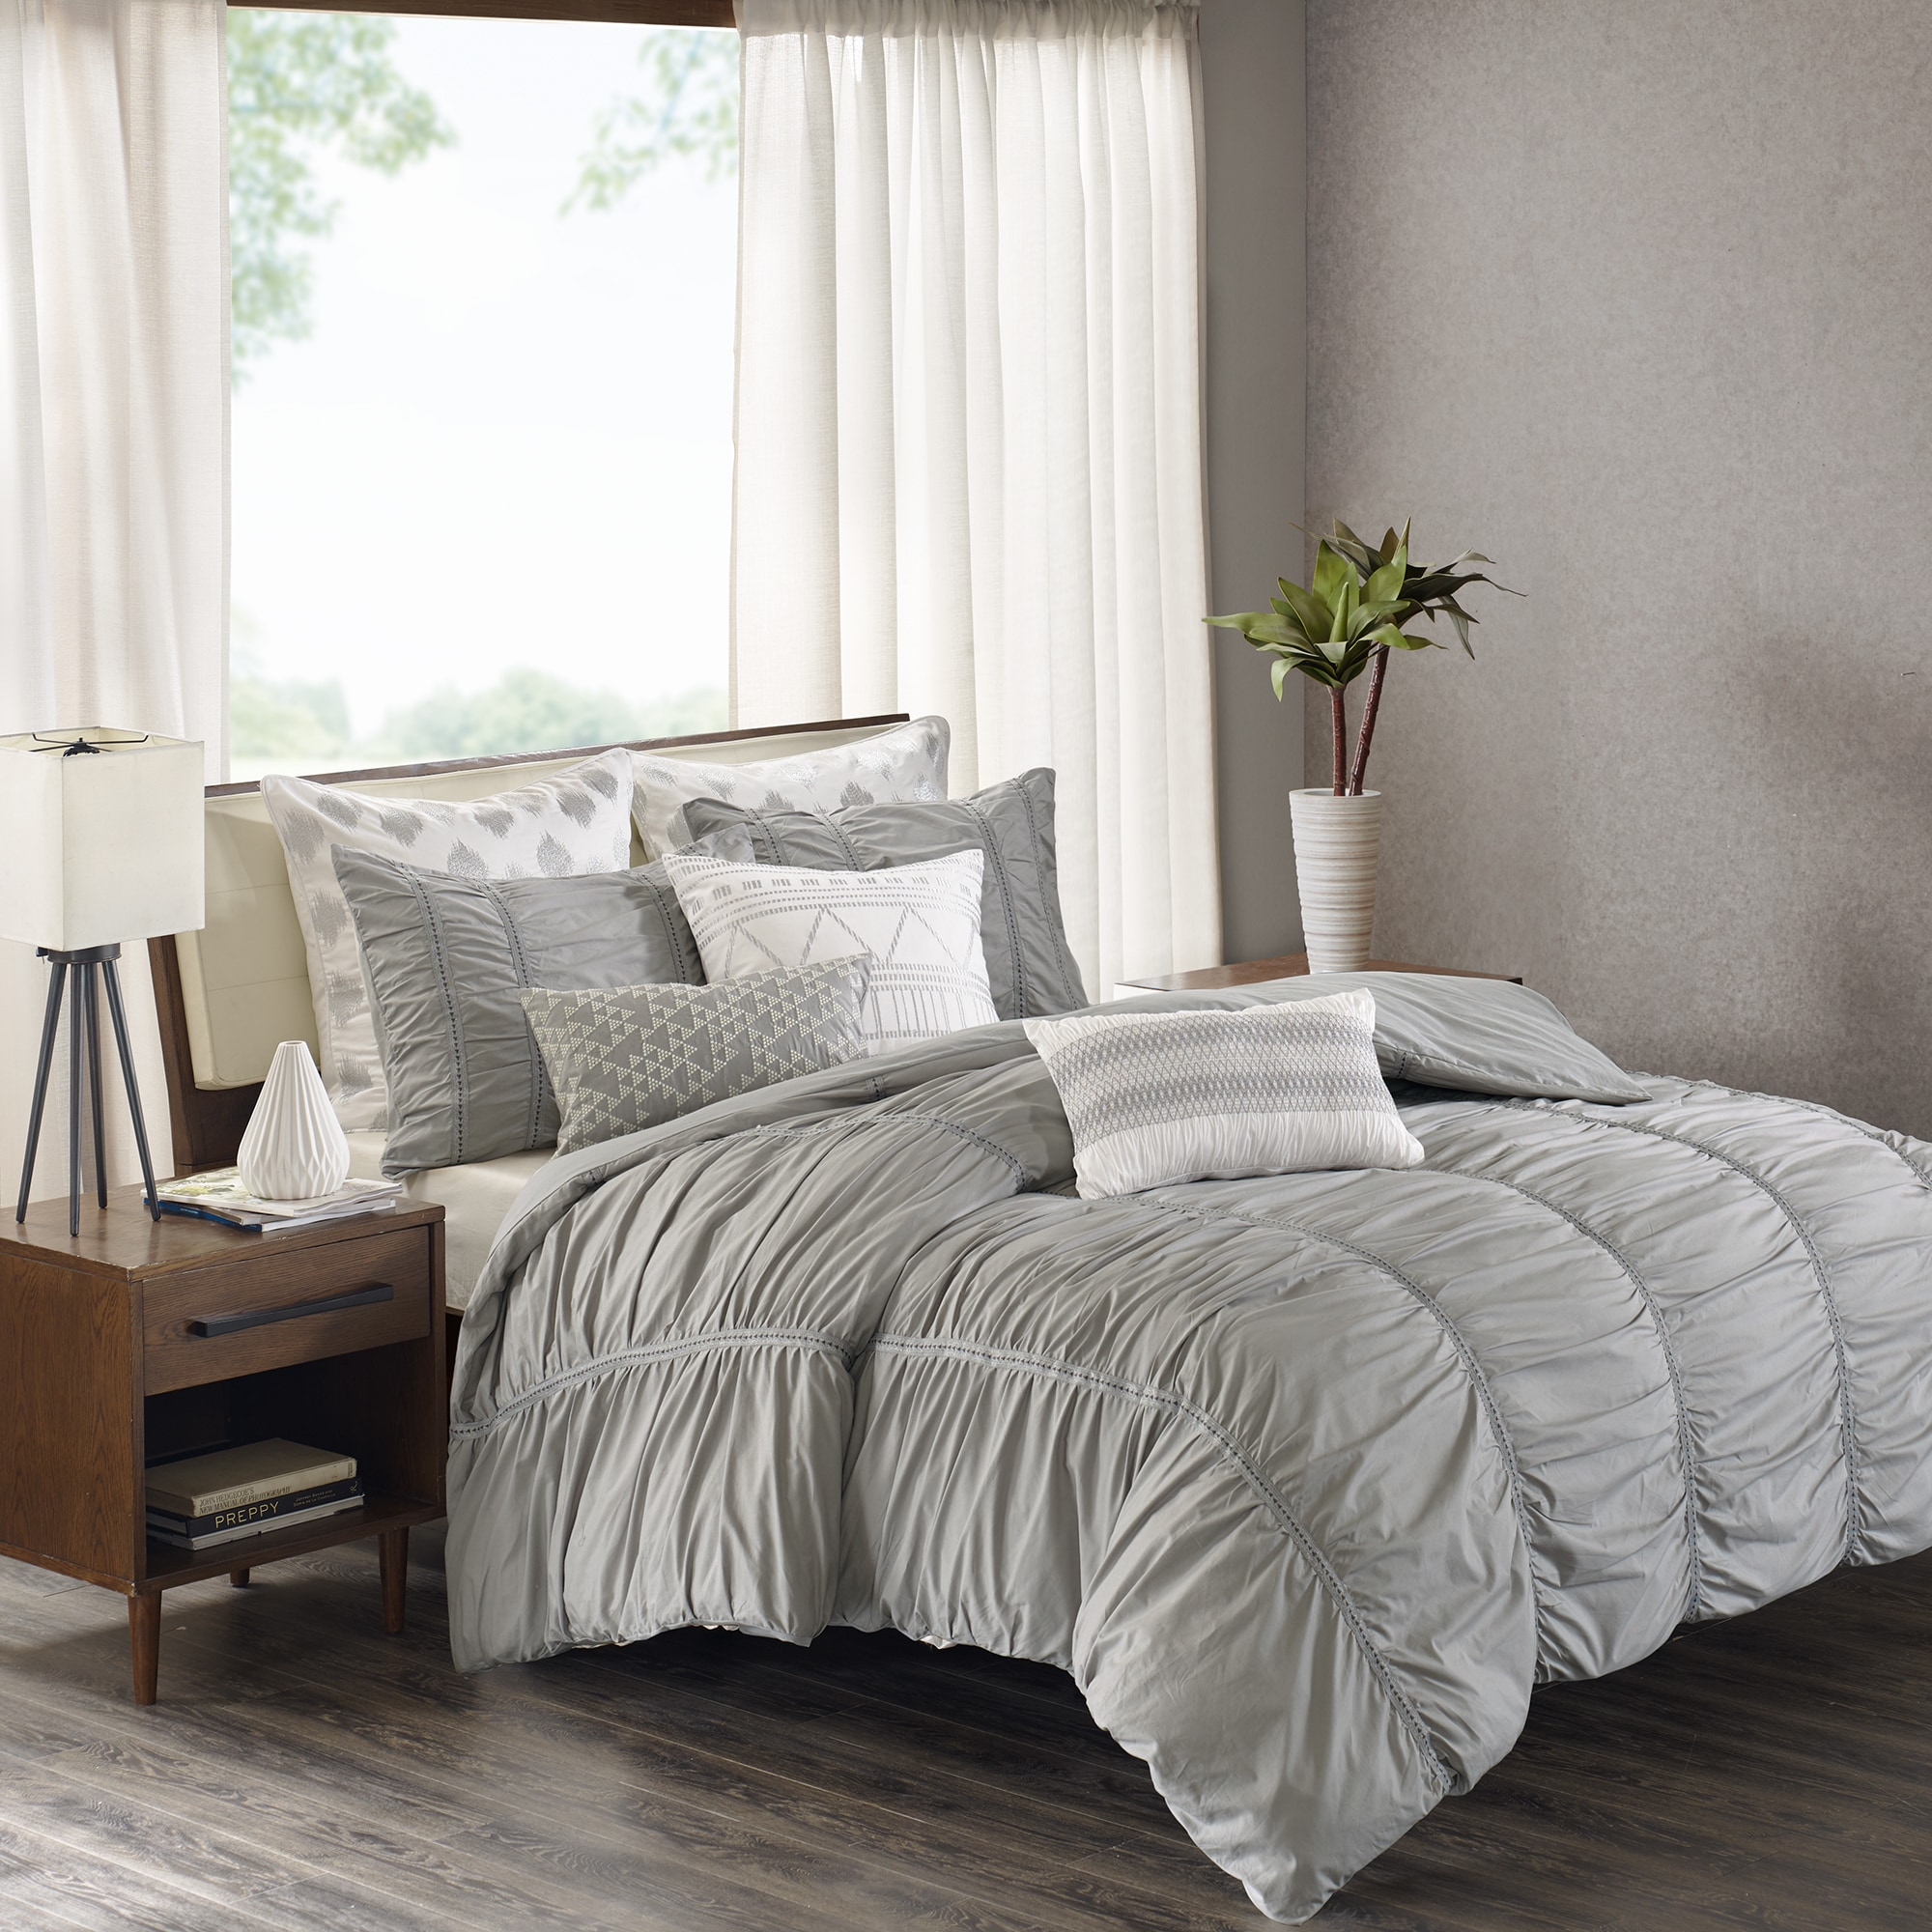 adora archive archives king bed gold cover metallic del best down image duvet of small